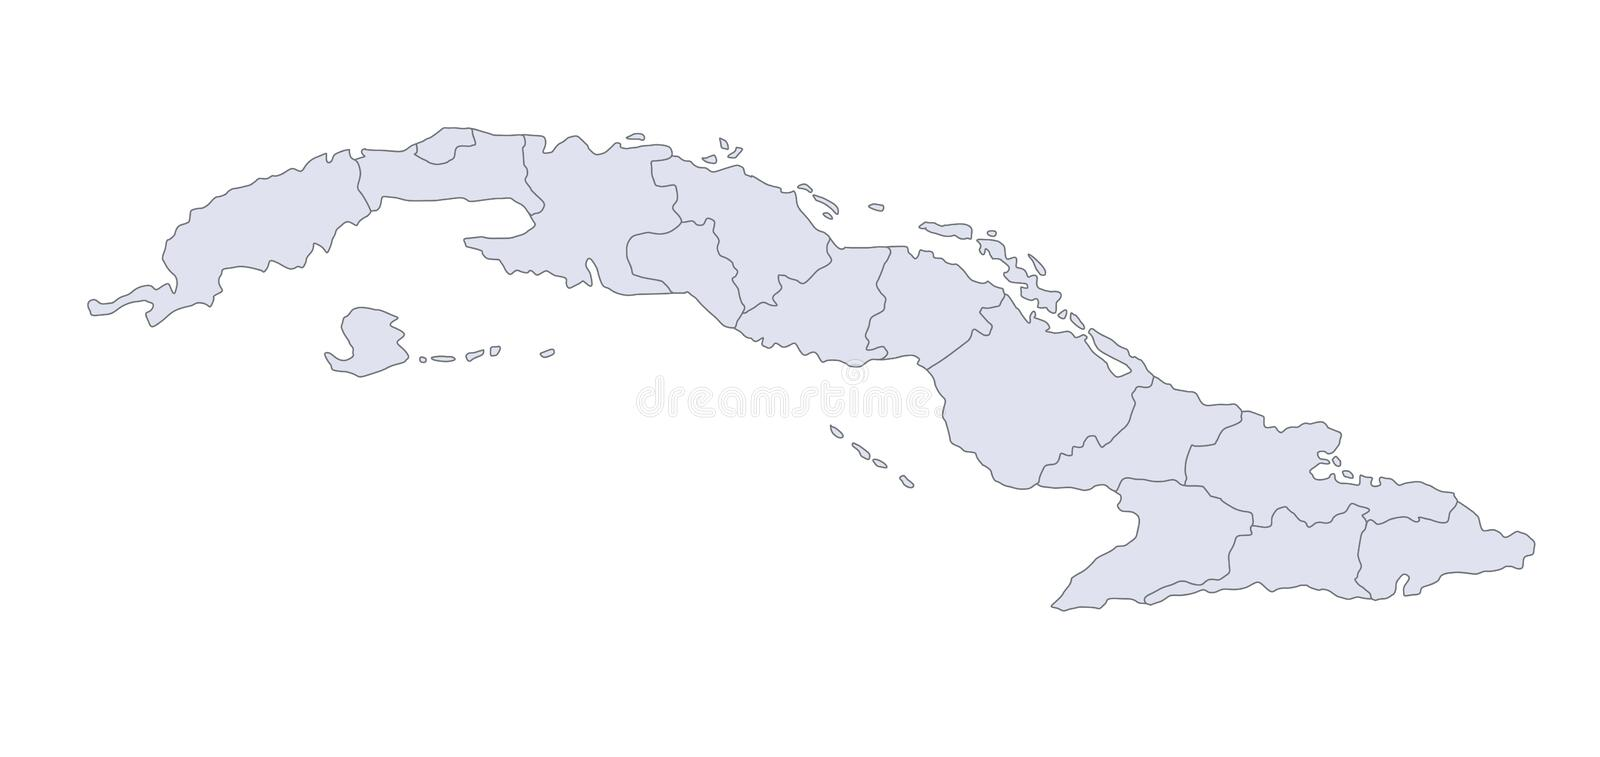 Map Cuba. A stylized map of Cuba showing the different provinces royalty free illustration